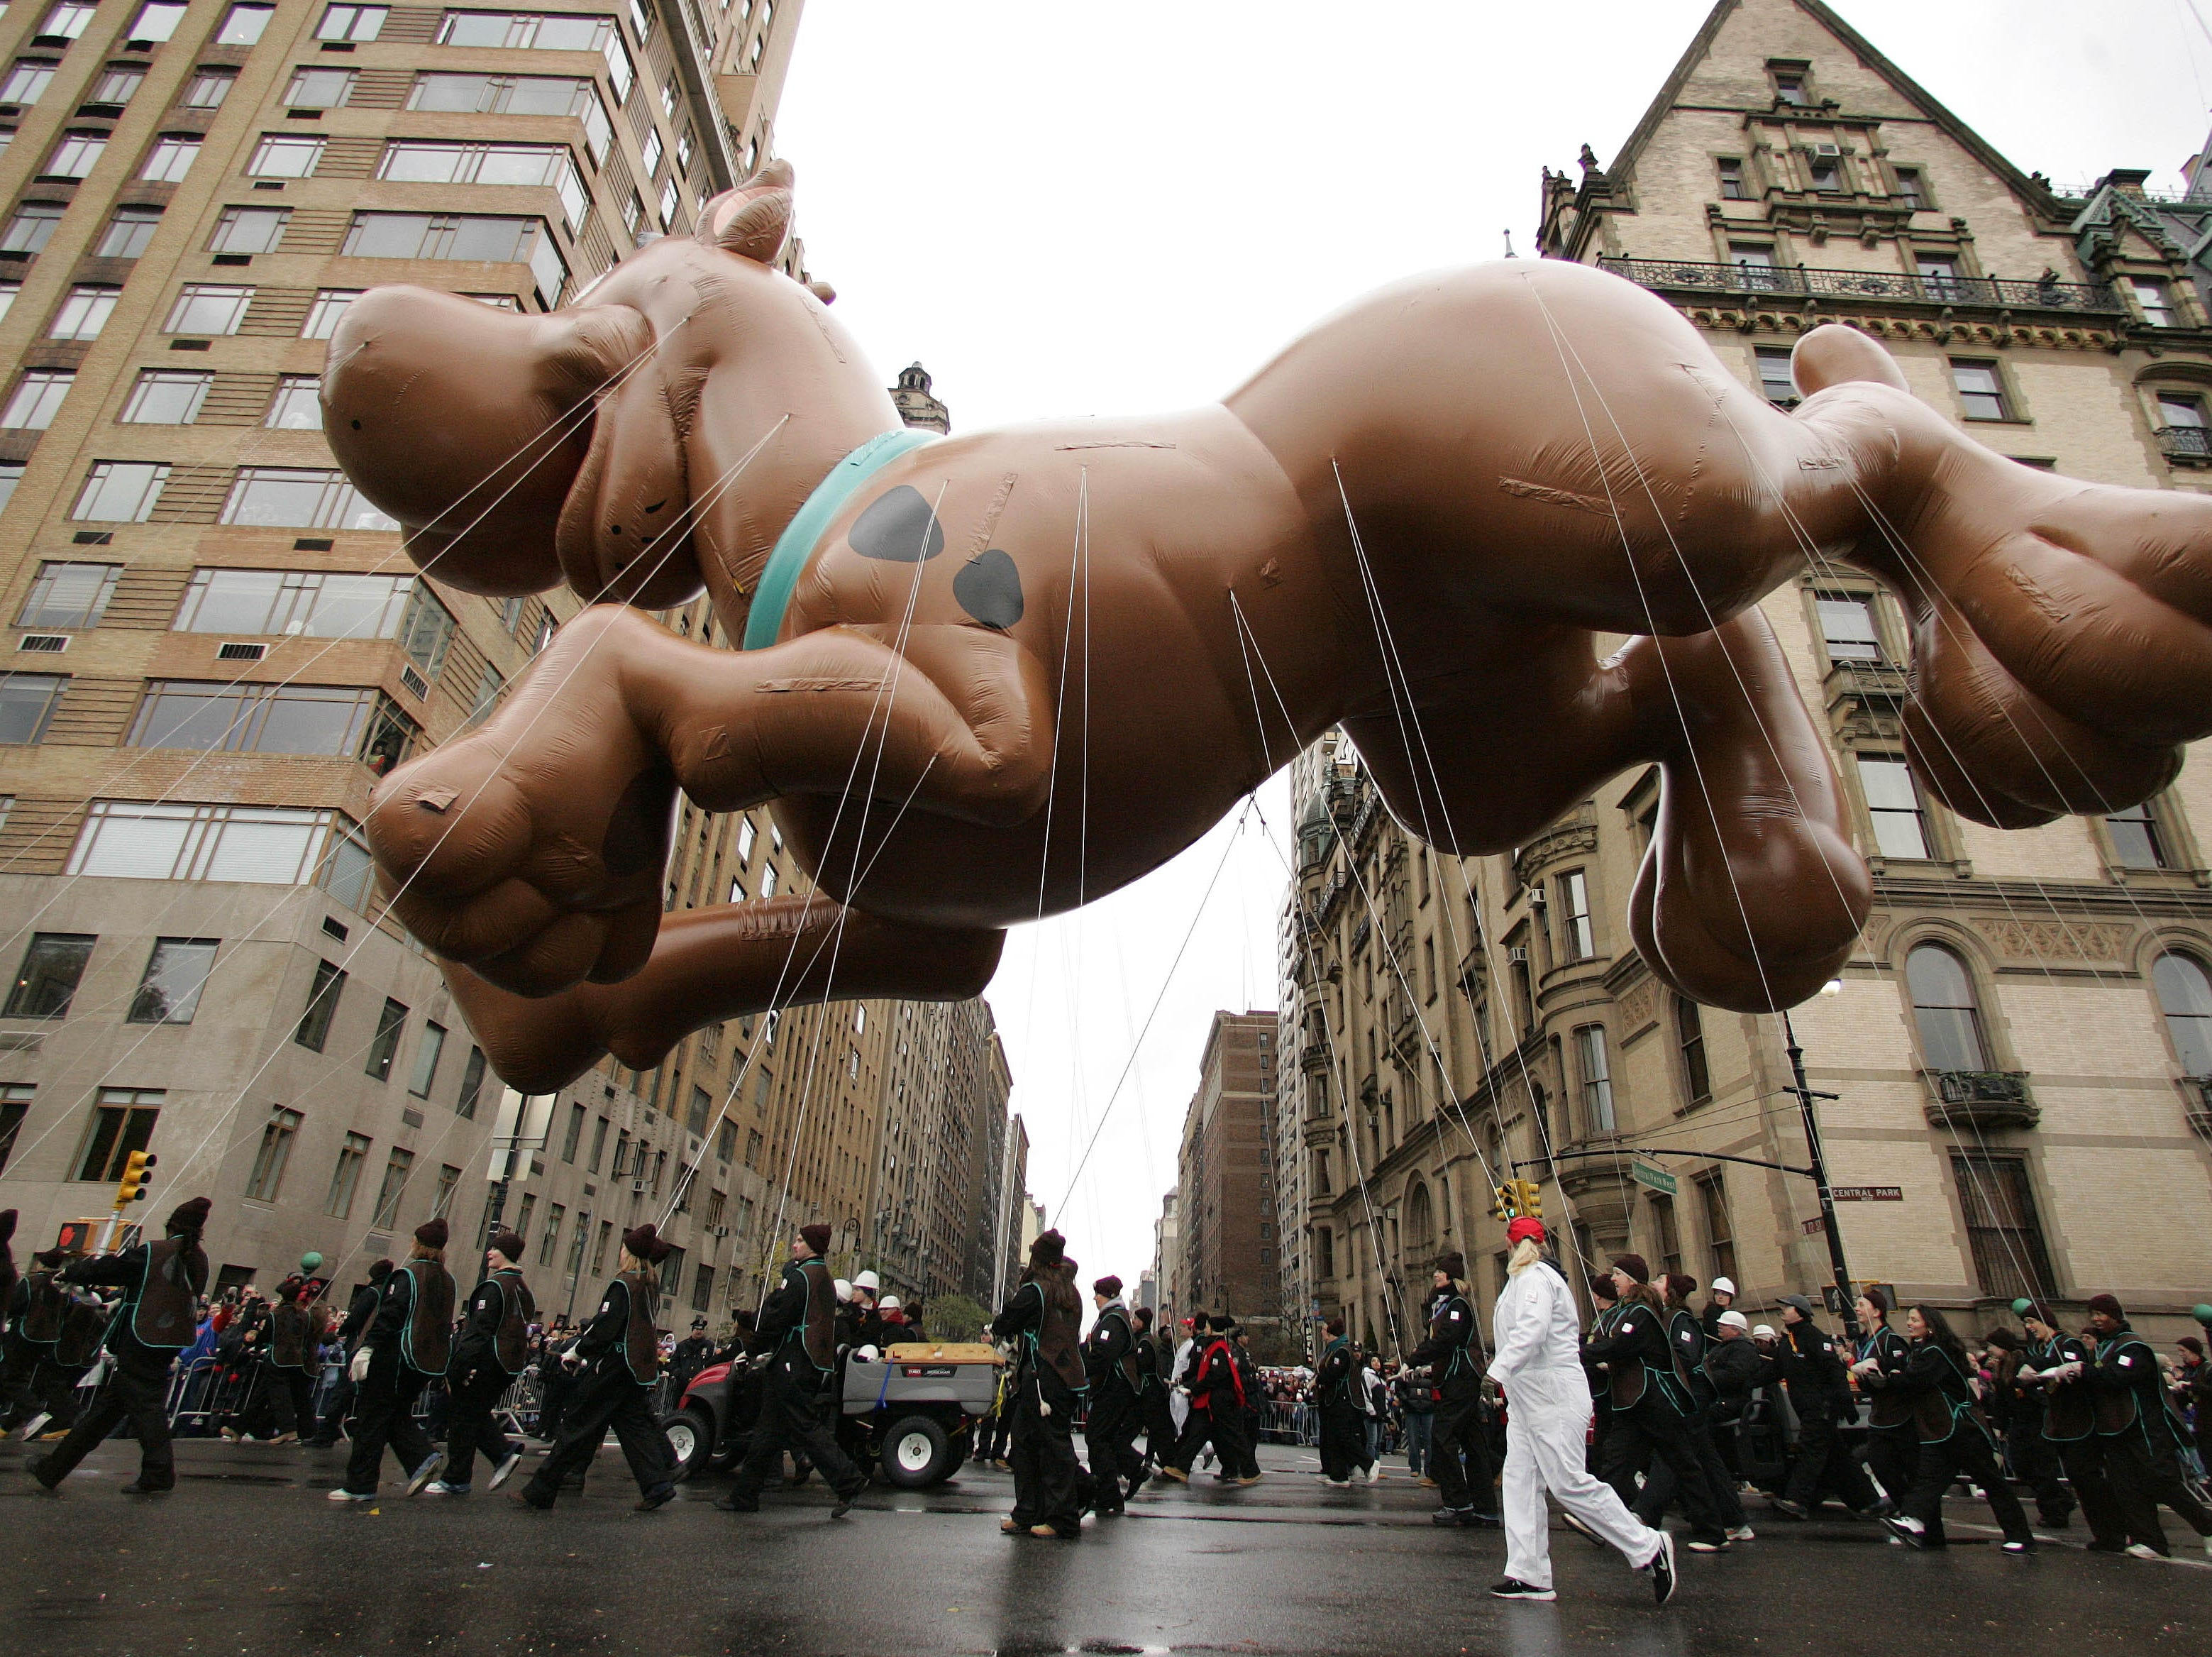 The Scooby Doo balloon hangs over Central Park West as it is pulled through the Macy's Thanksgiving Day Parade Thursday, Nov. 24, 2005 in New York. (AP Photo/Julie Jacobson)